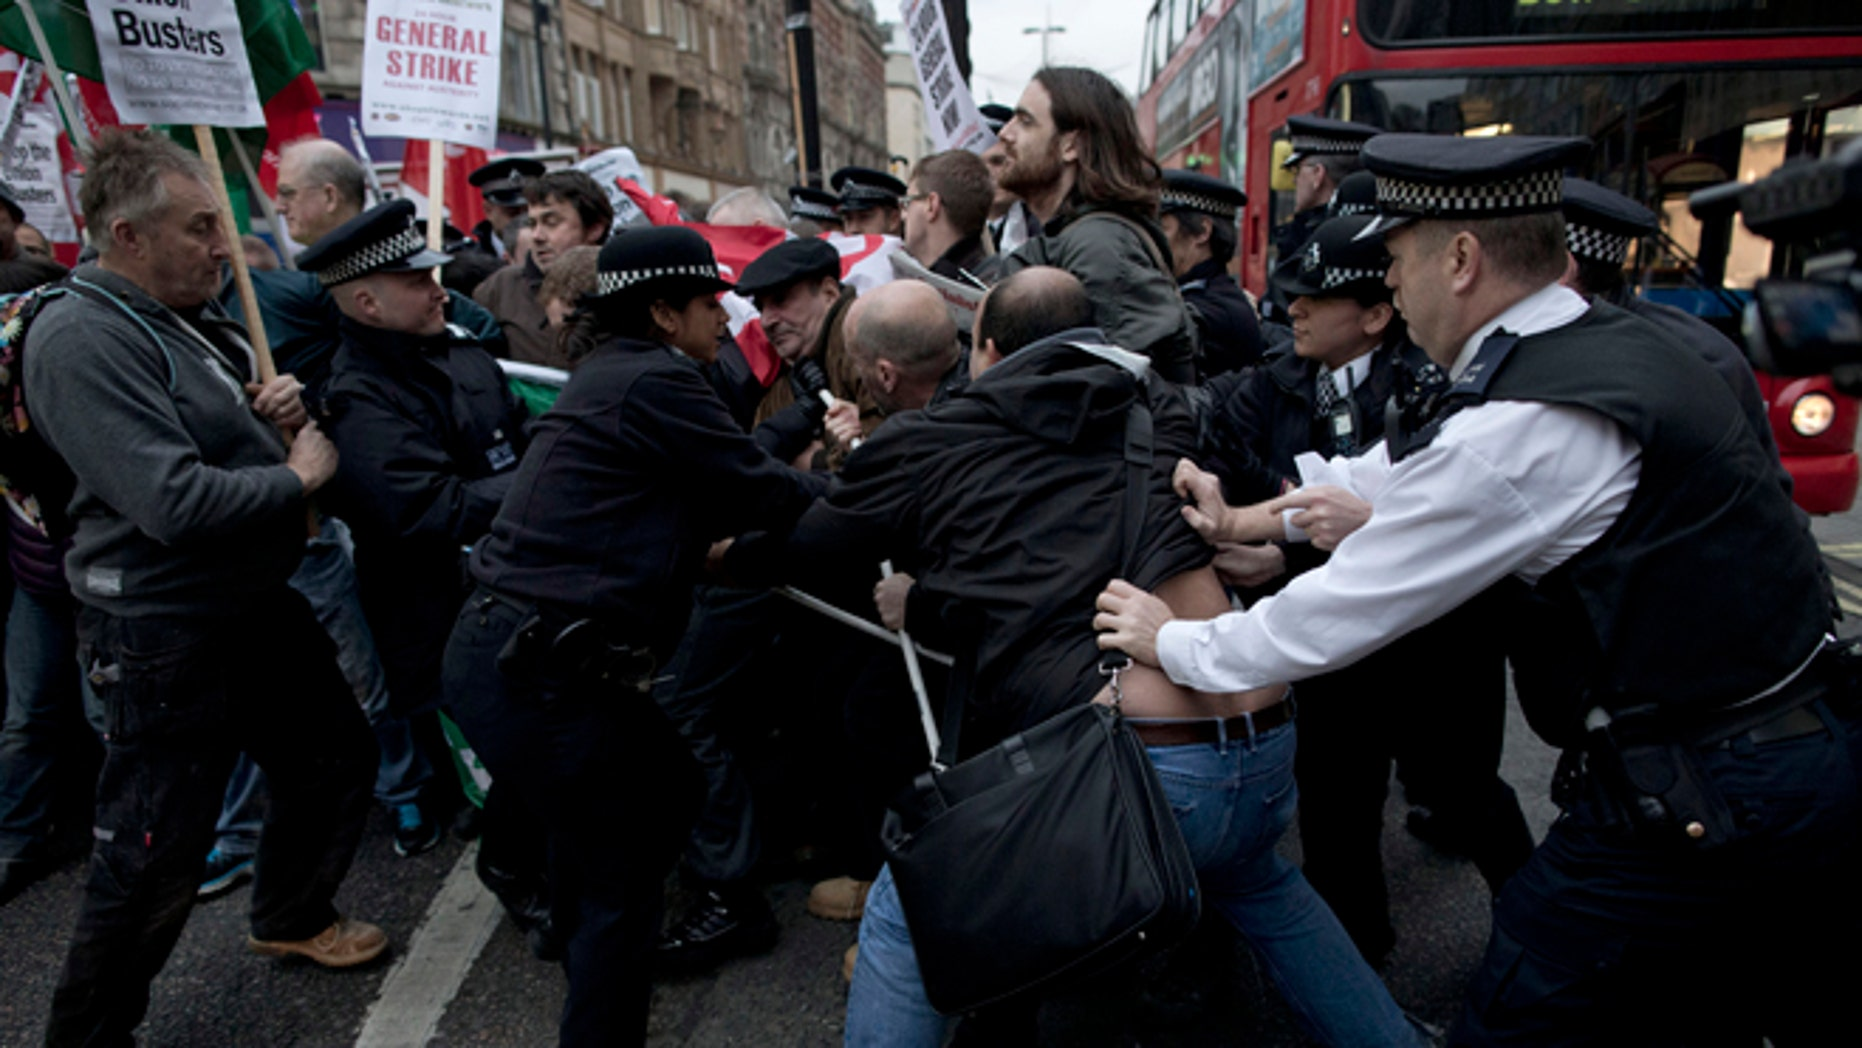 Nov. 14, 2012: Police officers try to push protesters back onto the pavement after they blocked traffic on Oxford Street, London, whilst taking part in a picket and demonstration they said was over dismissals of 28 workers employed by contractors on the Crossrail transport project, for being trade union members.